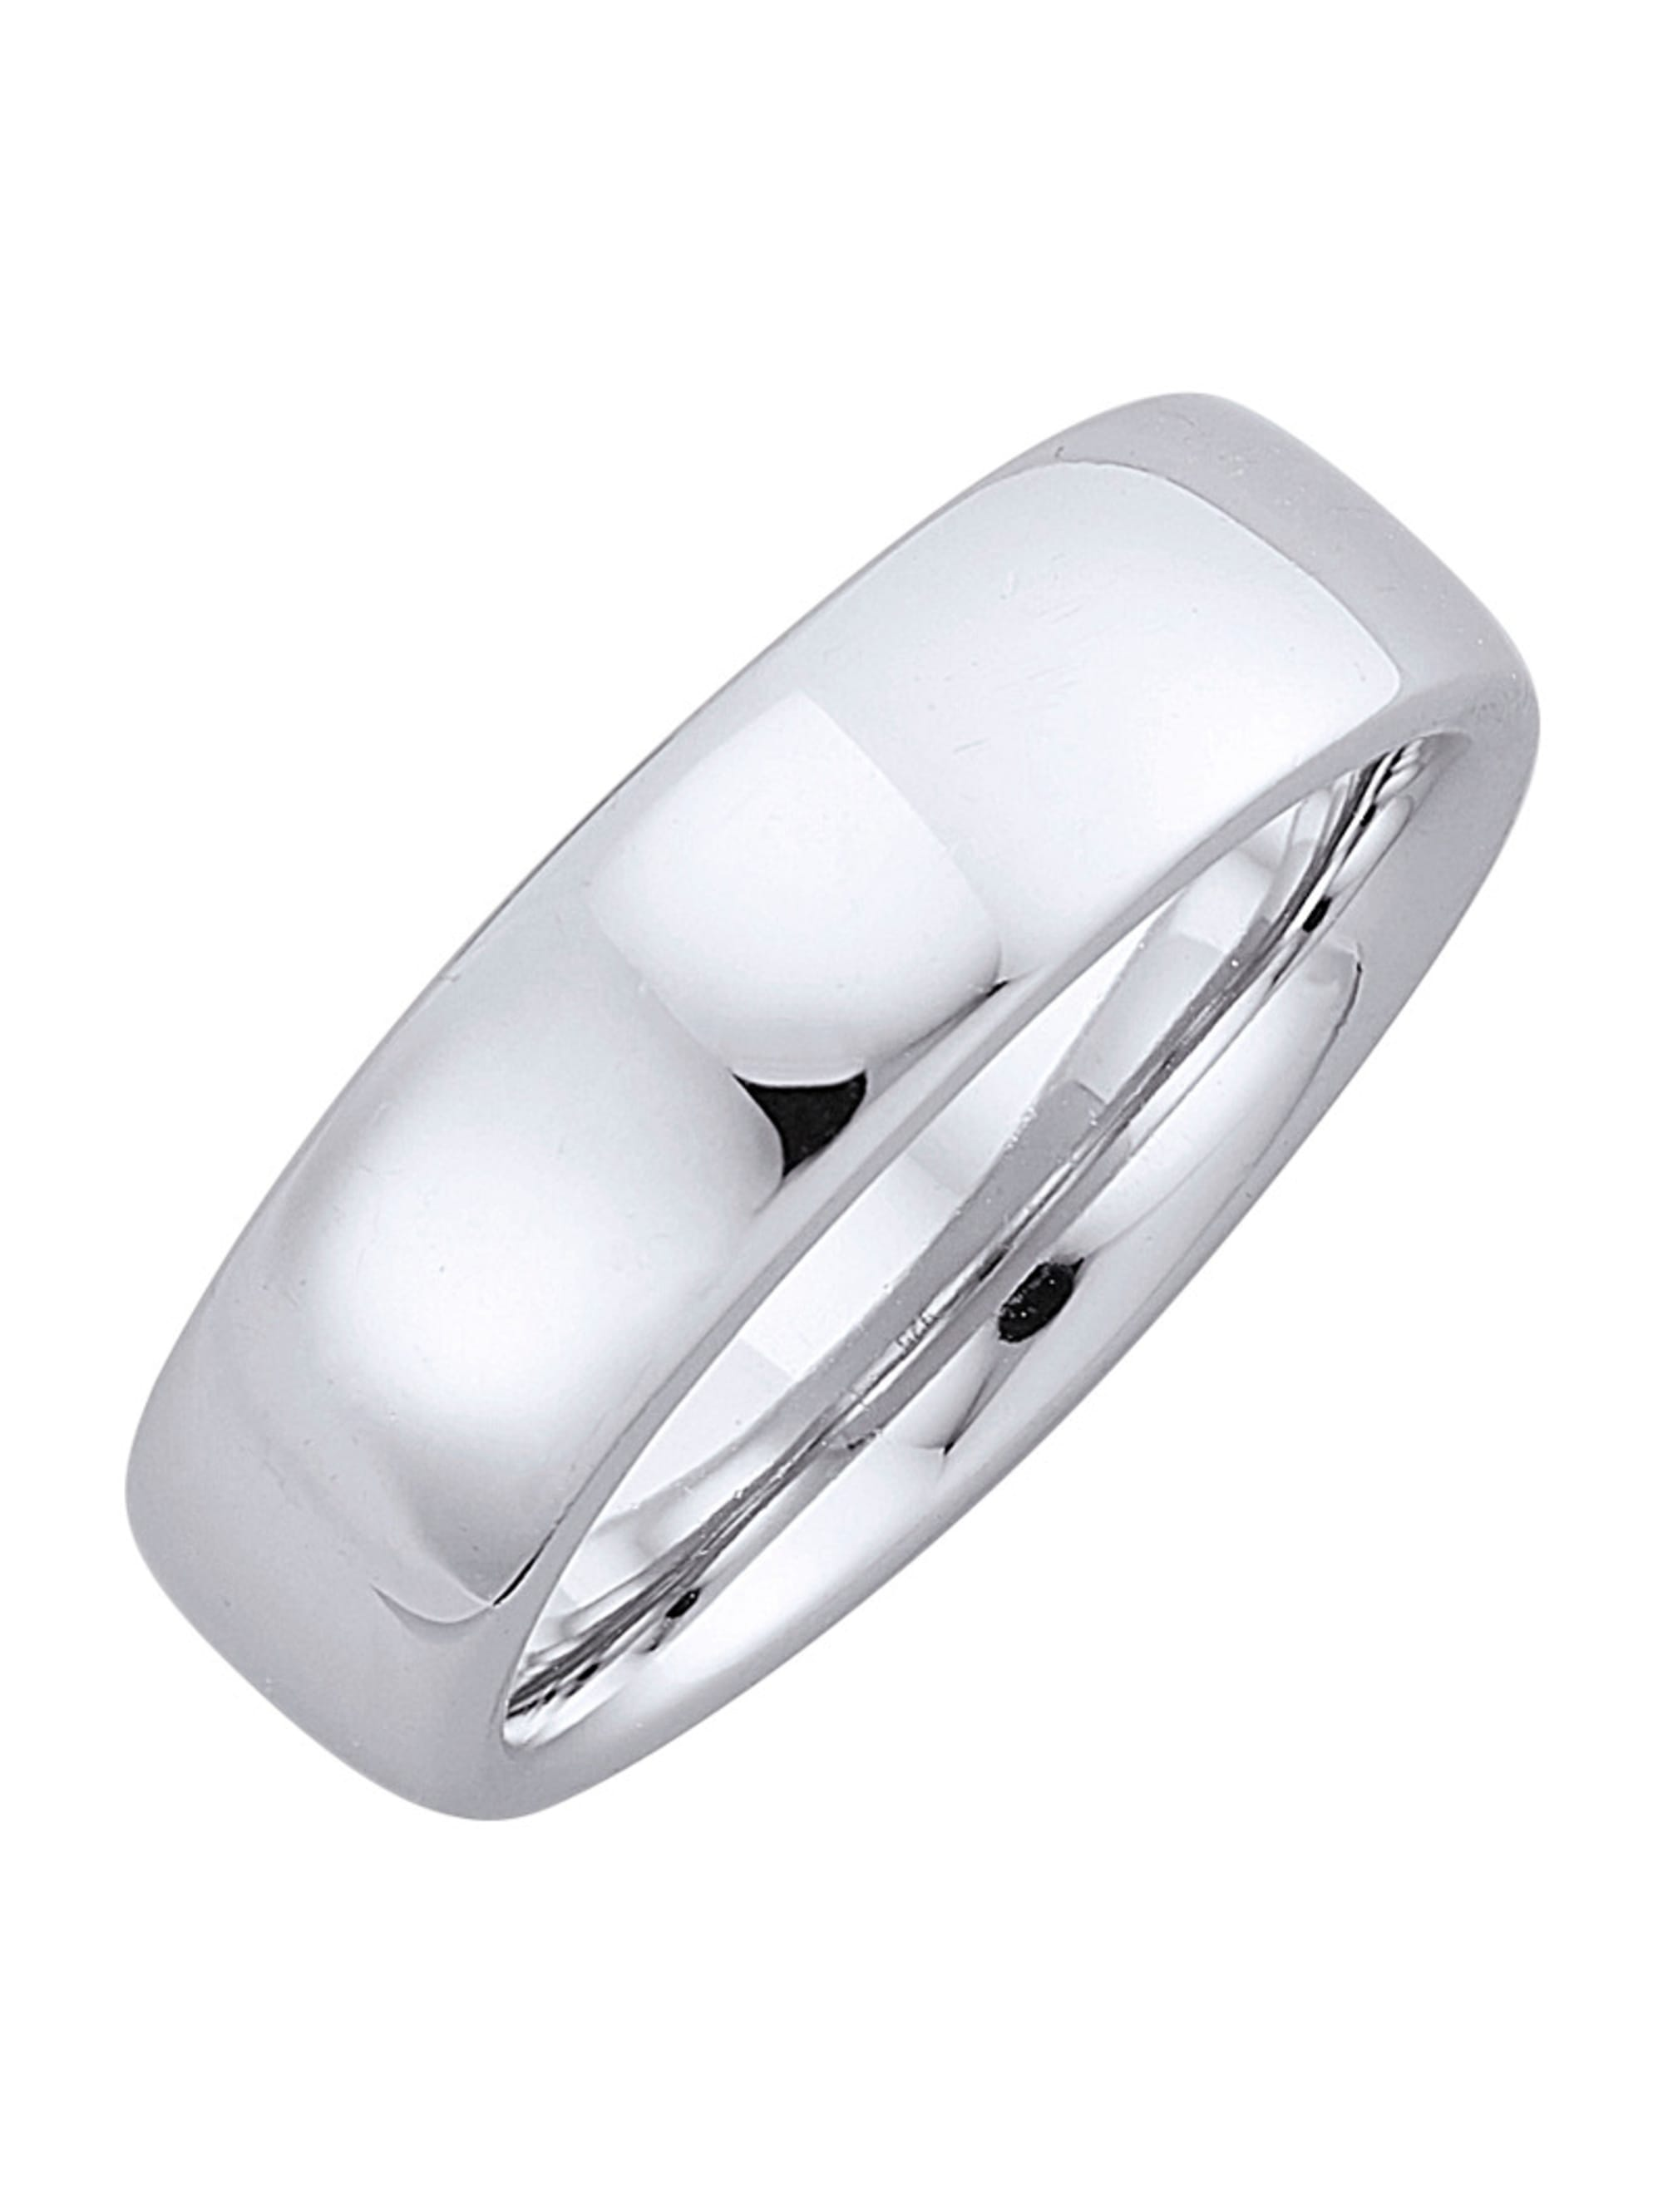 Herren-Partnerring in Silber 925 EgGq7